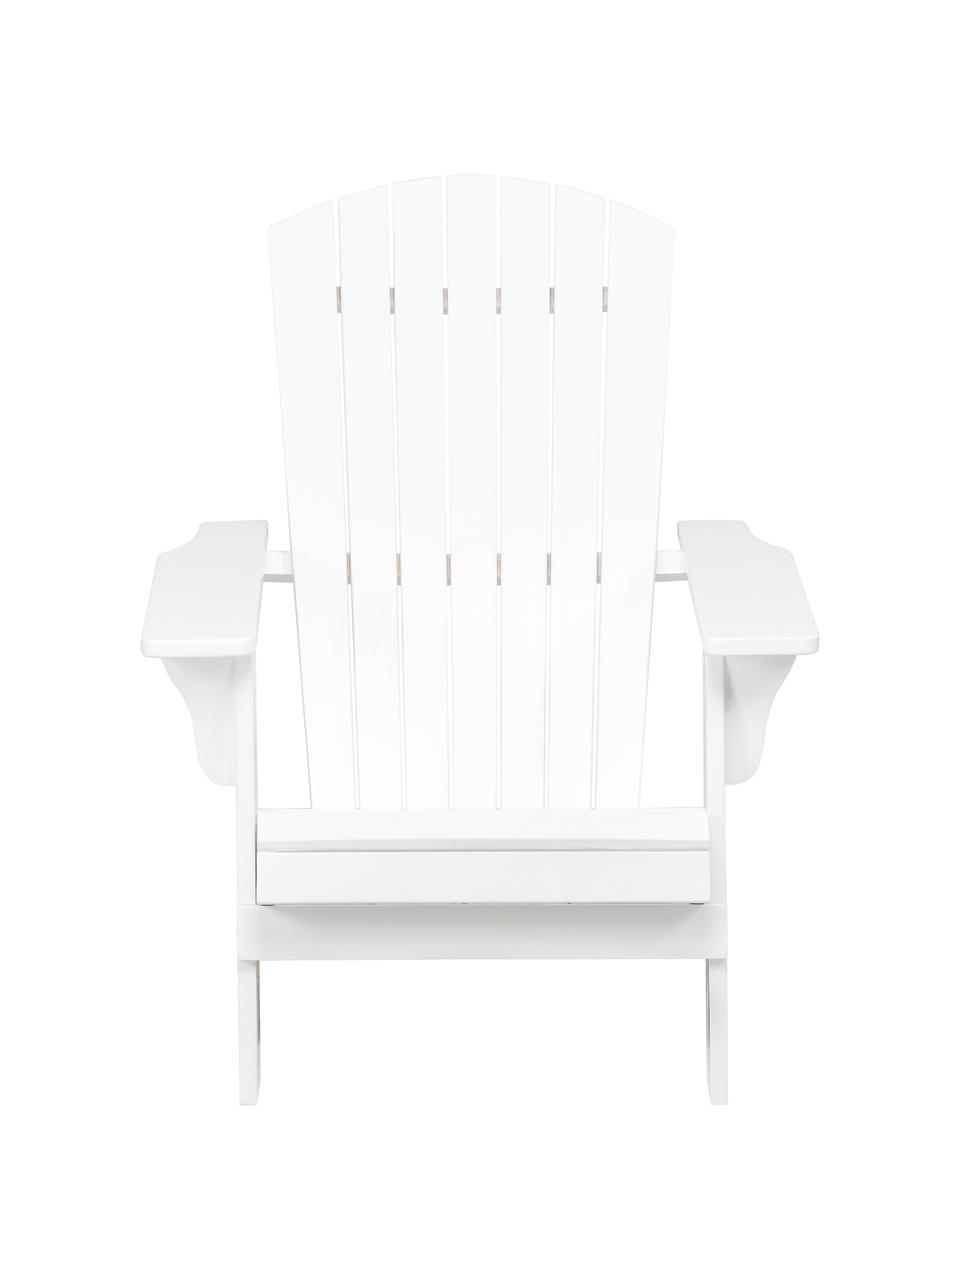 Acaciahouten tuin loungestoel Charlie in wit, Massief geolied acaciahout en gelakt, Wit, B 93  x D 74 cm